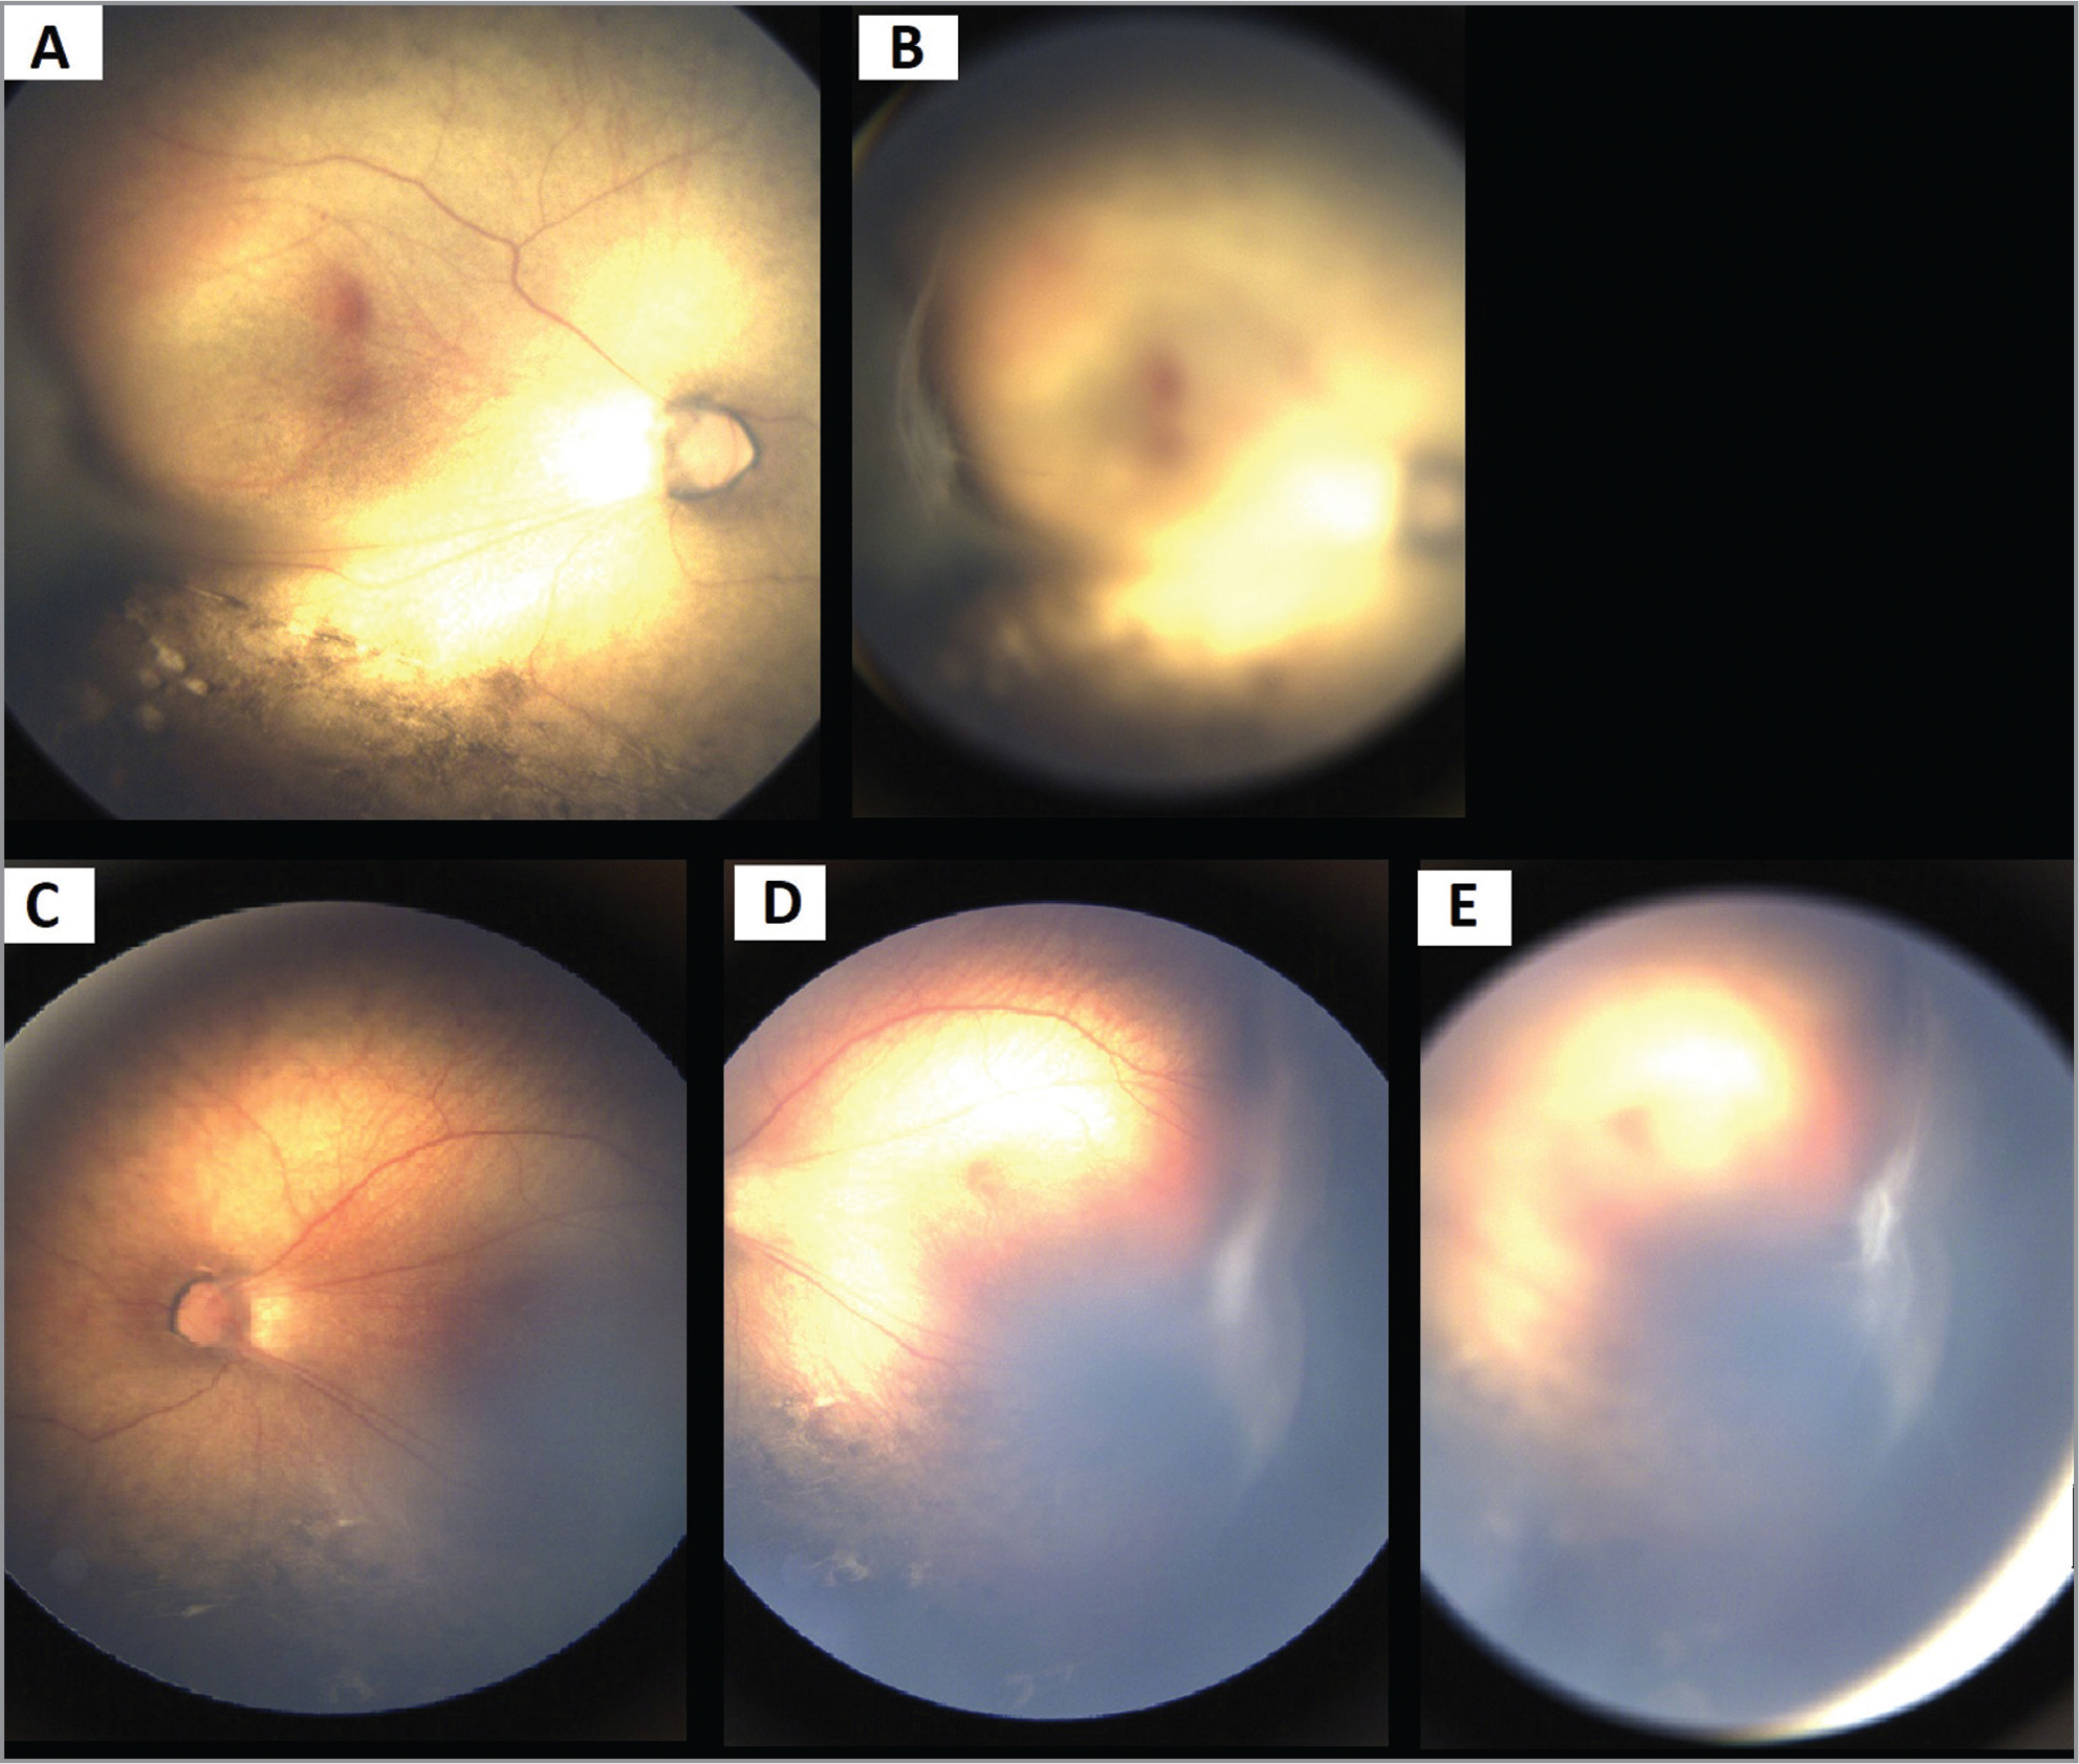 Temporal retinal exudative tractional folds in familial exudative vitreoretinopathy in the right (A) and left (C, D) eyes associated with retrolenticular adhesion (B, E).